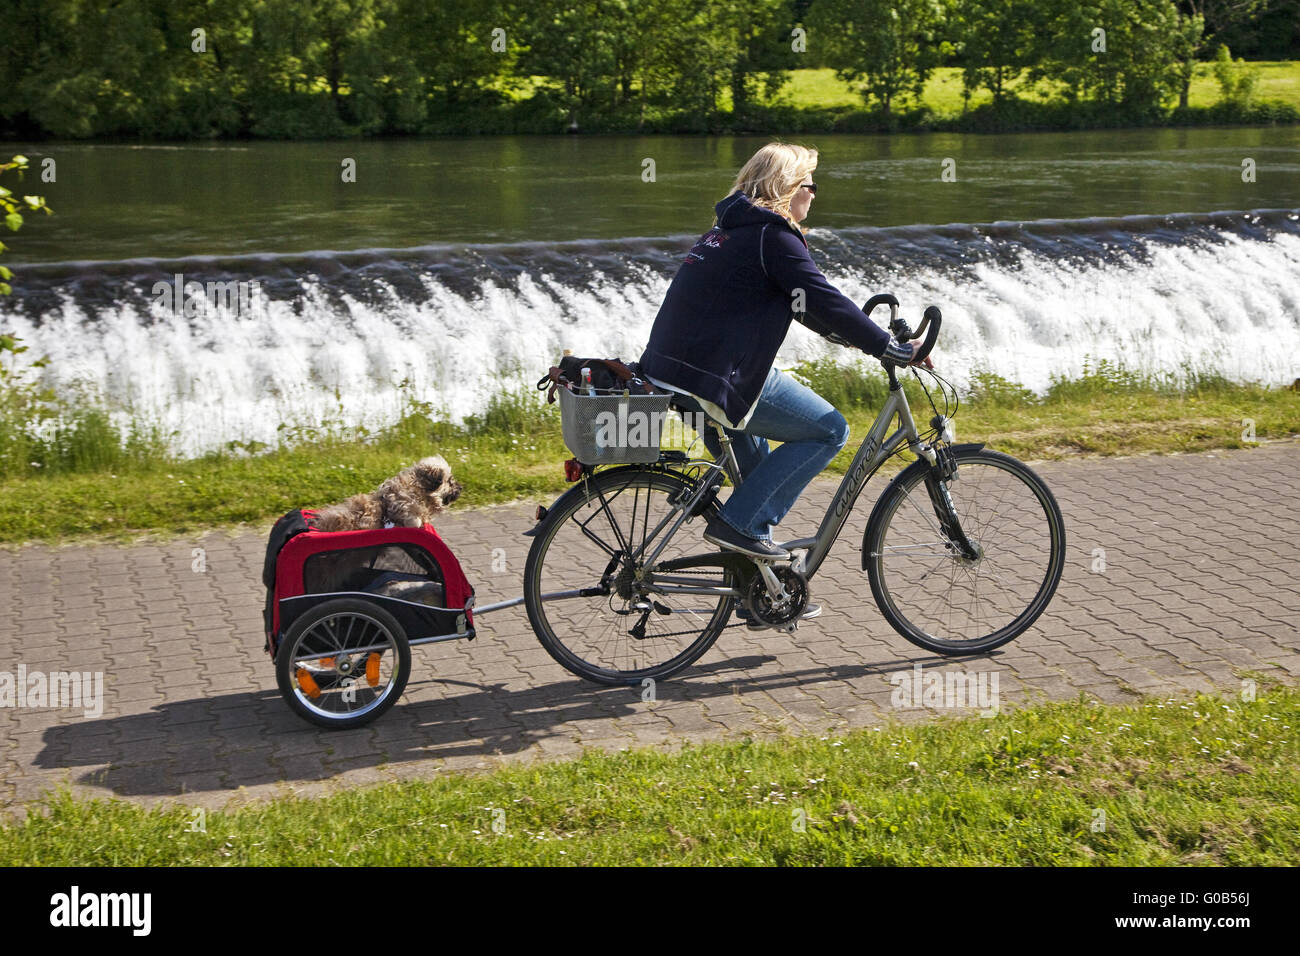 A cyclist with her dog in the bike trailer, Witten - Stock Image